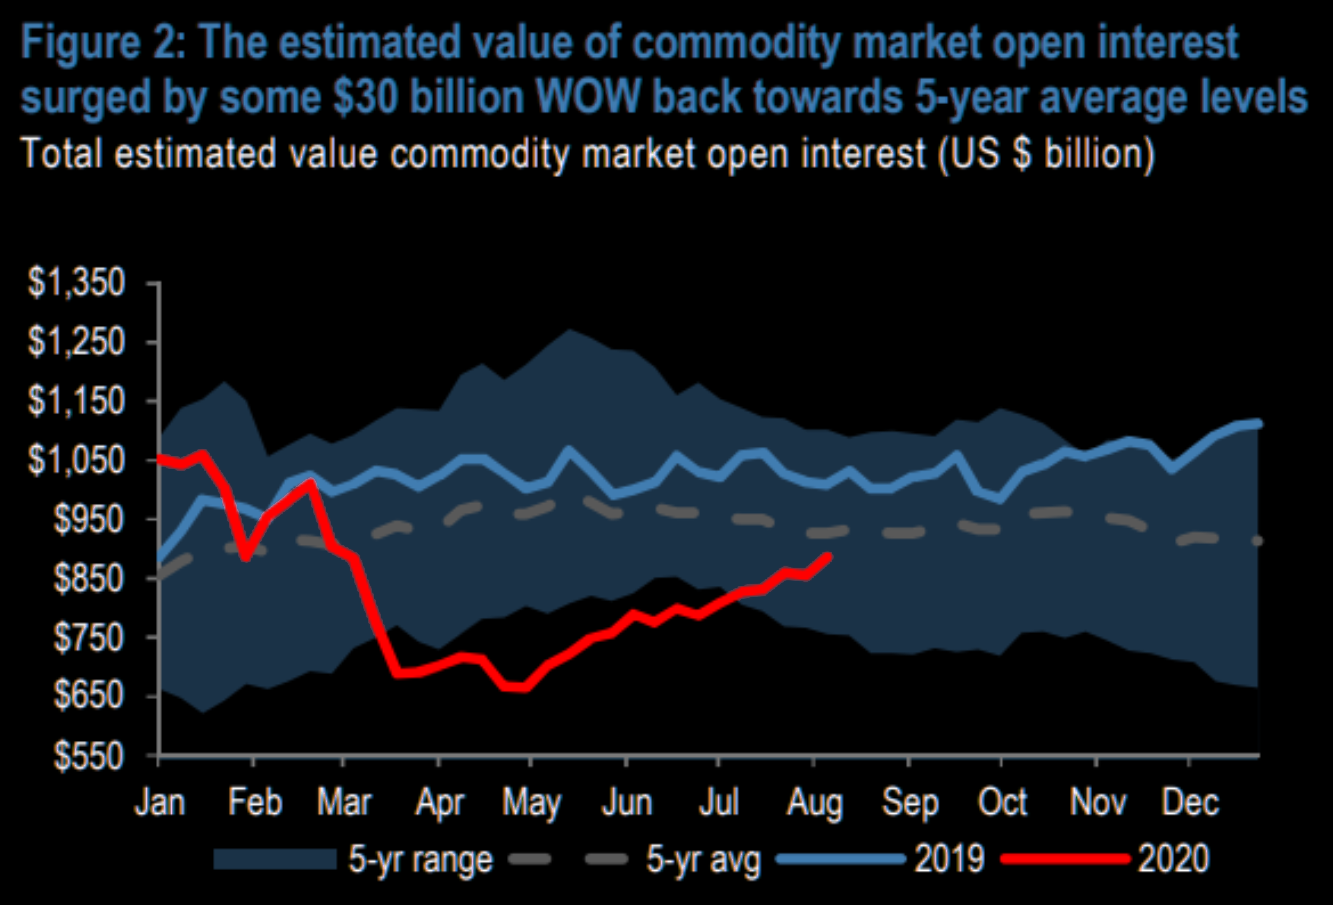 Commodity open interest is back to pre-COVID levels